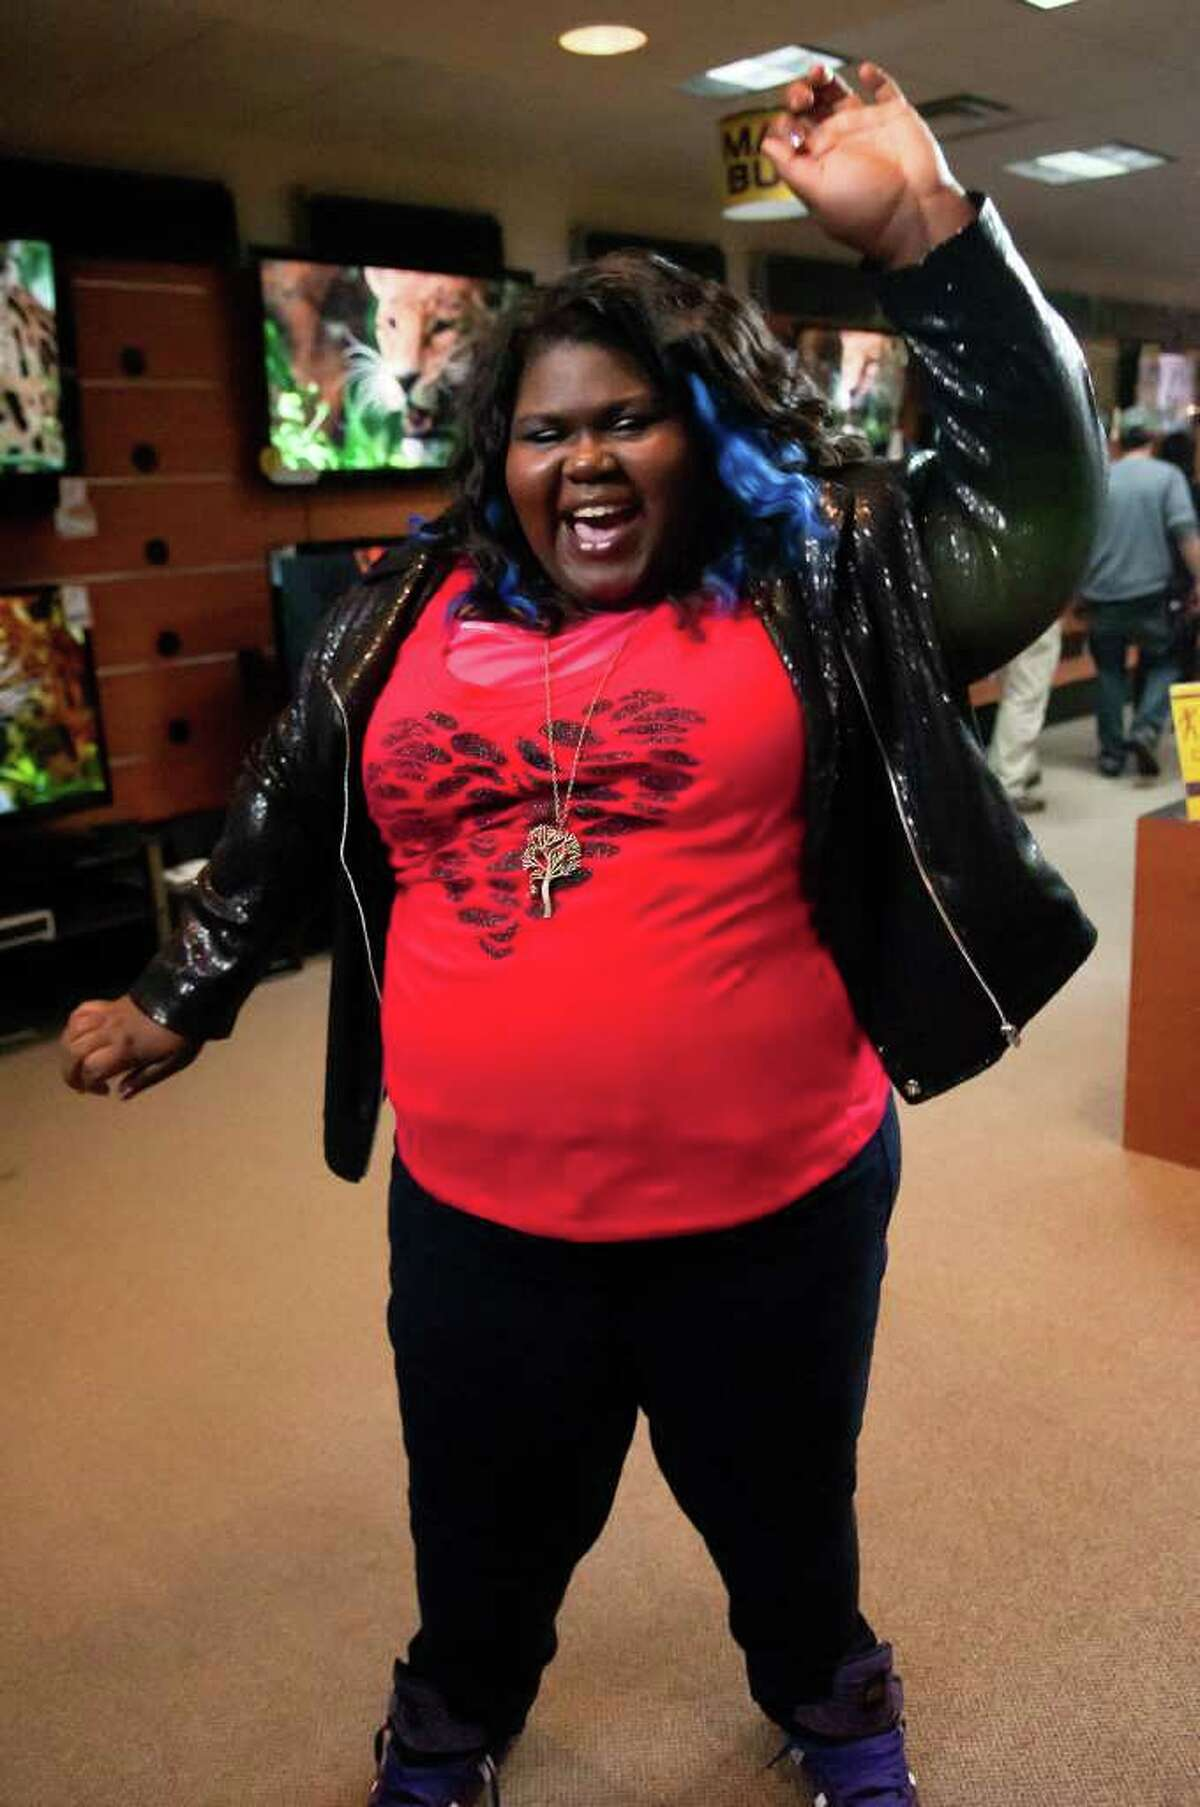 """Gabourey Sidibe as Andrea in Showtime's """"The Big C."""" Sidibe and co-star John Benjamin Hickey were seen shooting an episode of """"The Big C"""" at La Bretagne Restaurant in Stamford Feb. 2. (Photo: Ken Regan/SHOWTIME)"""